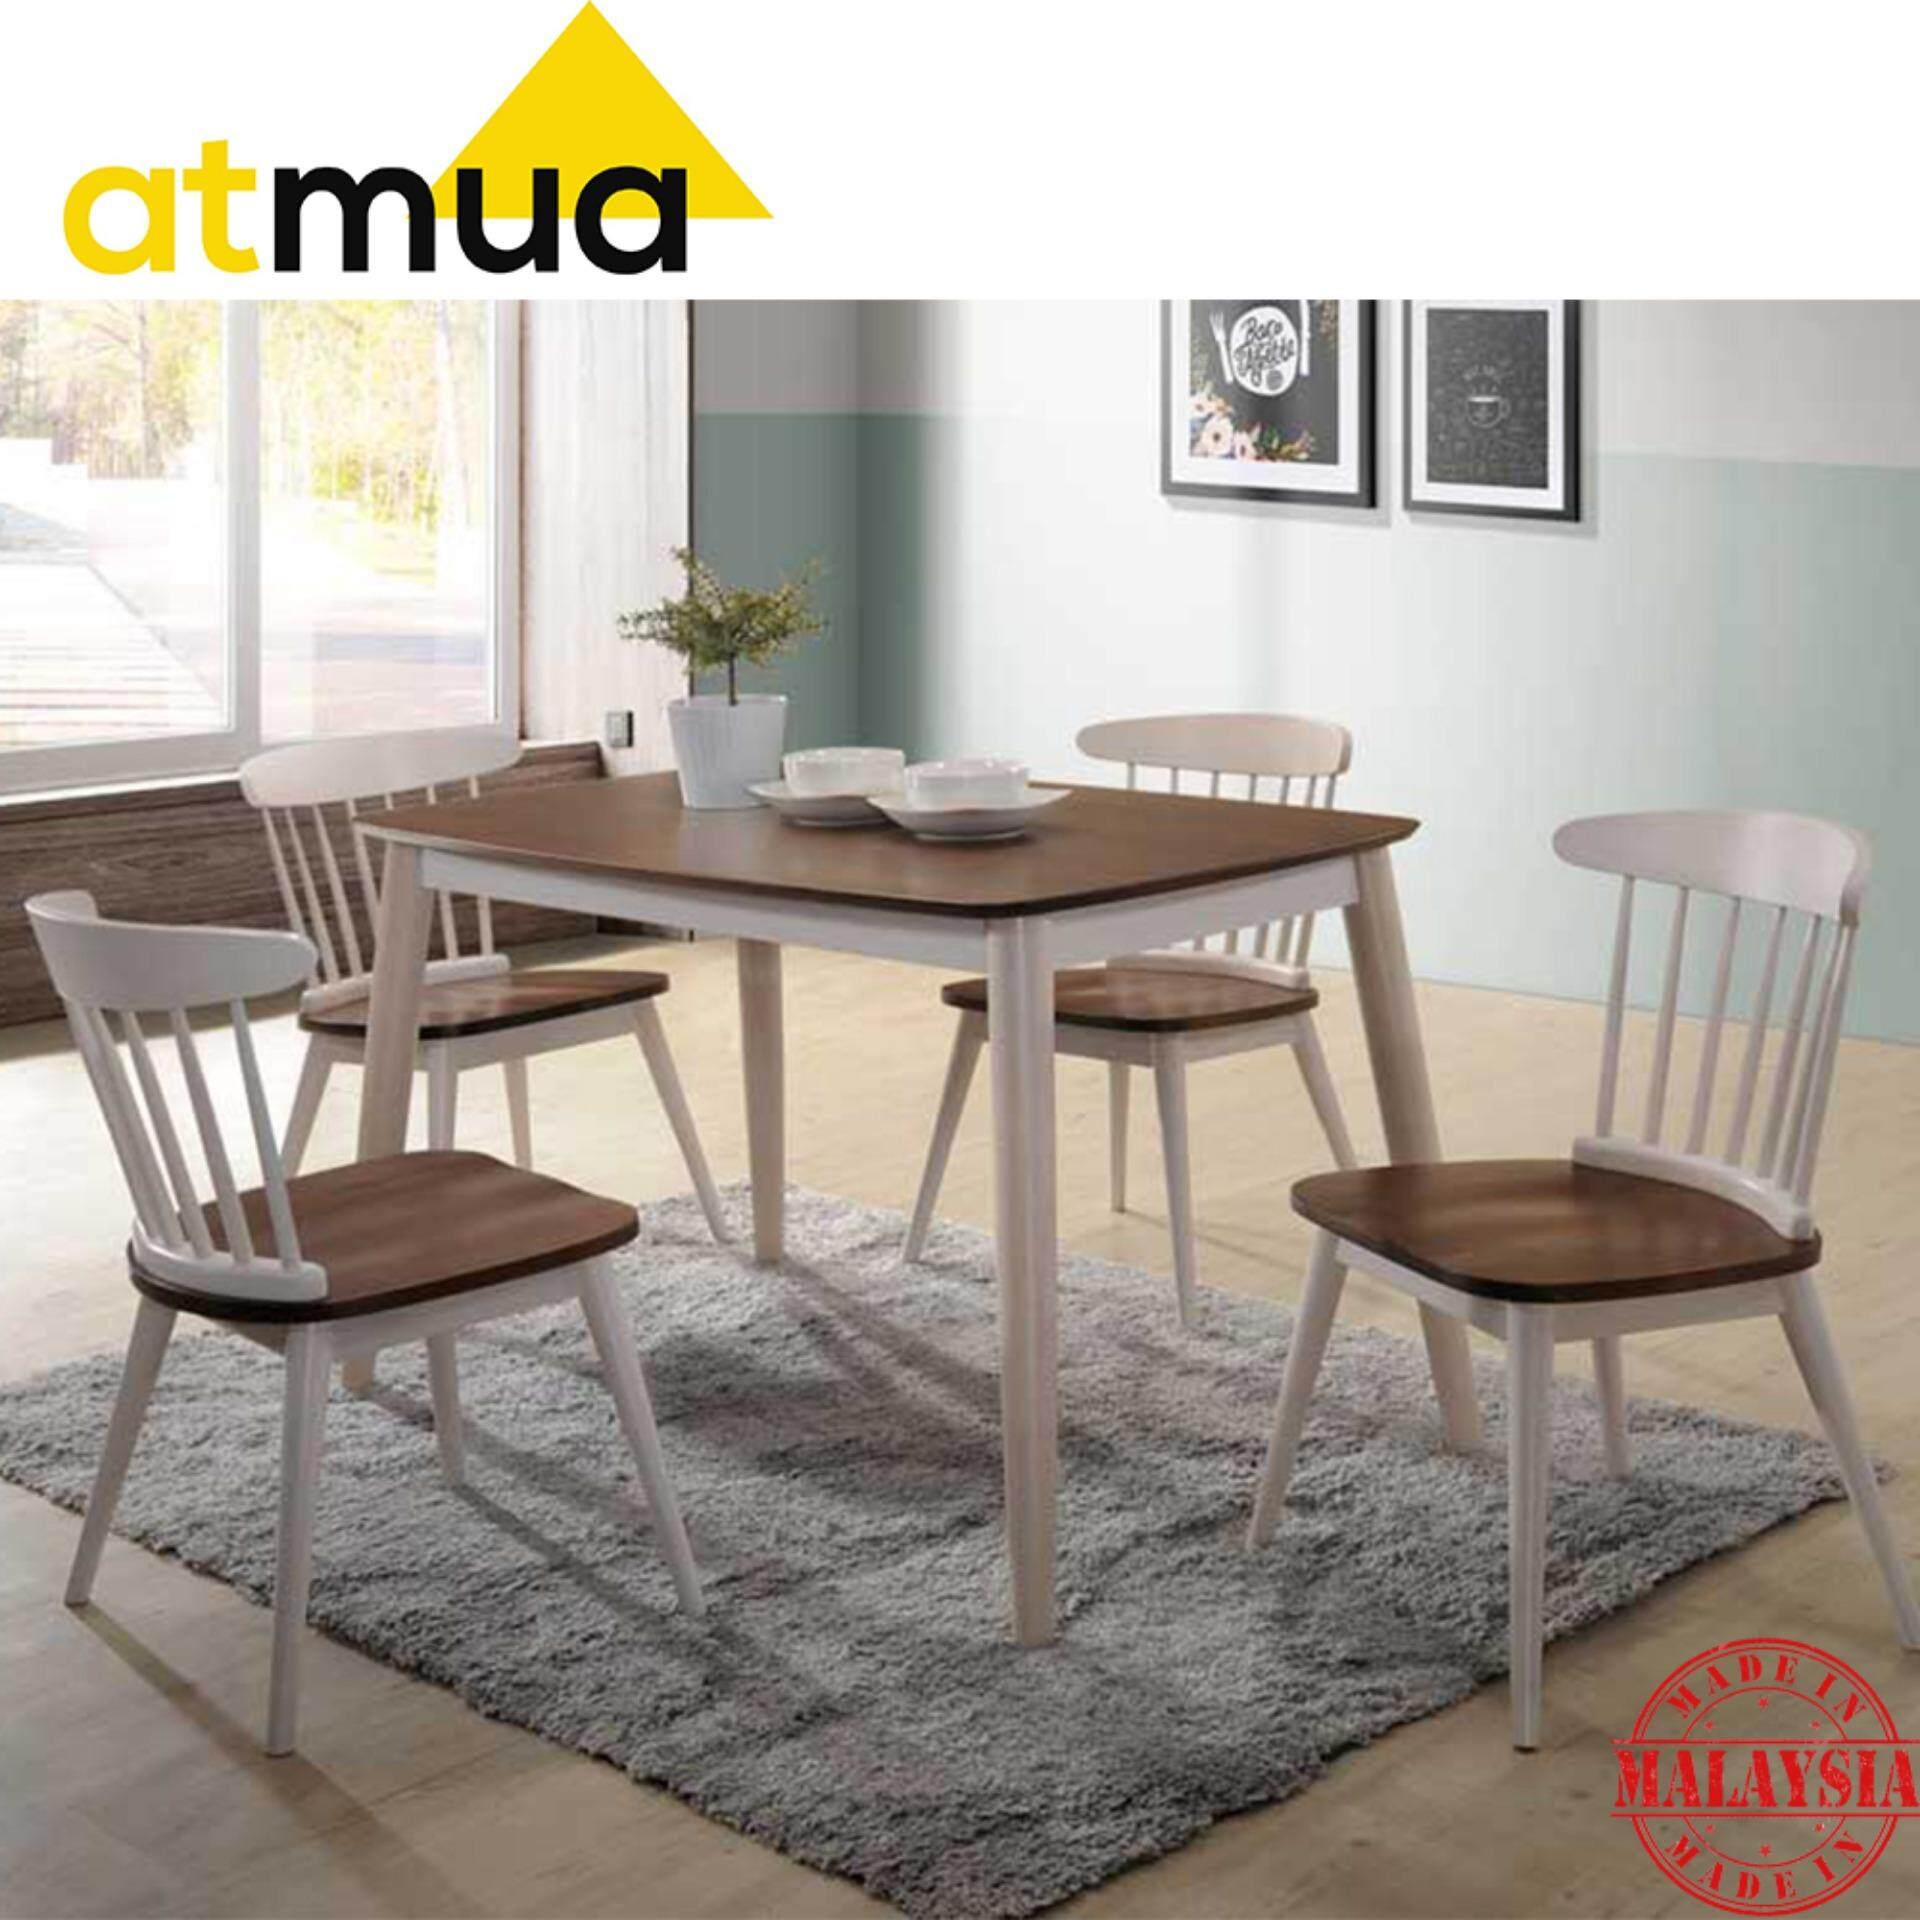 Atmua Gordon Scandinavian Dining Set (1 Table + 4 Chair) [Full Solid Rubber Wood]